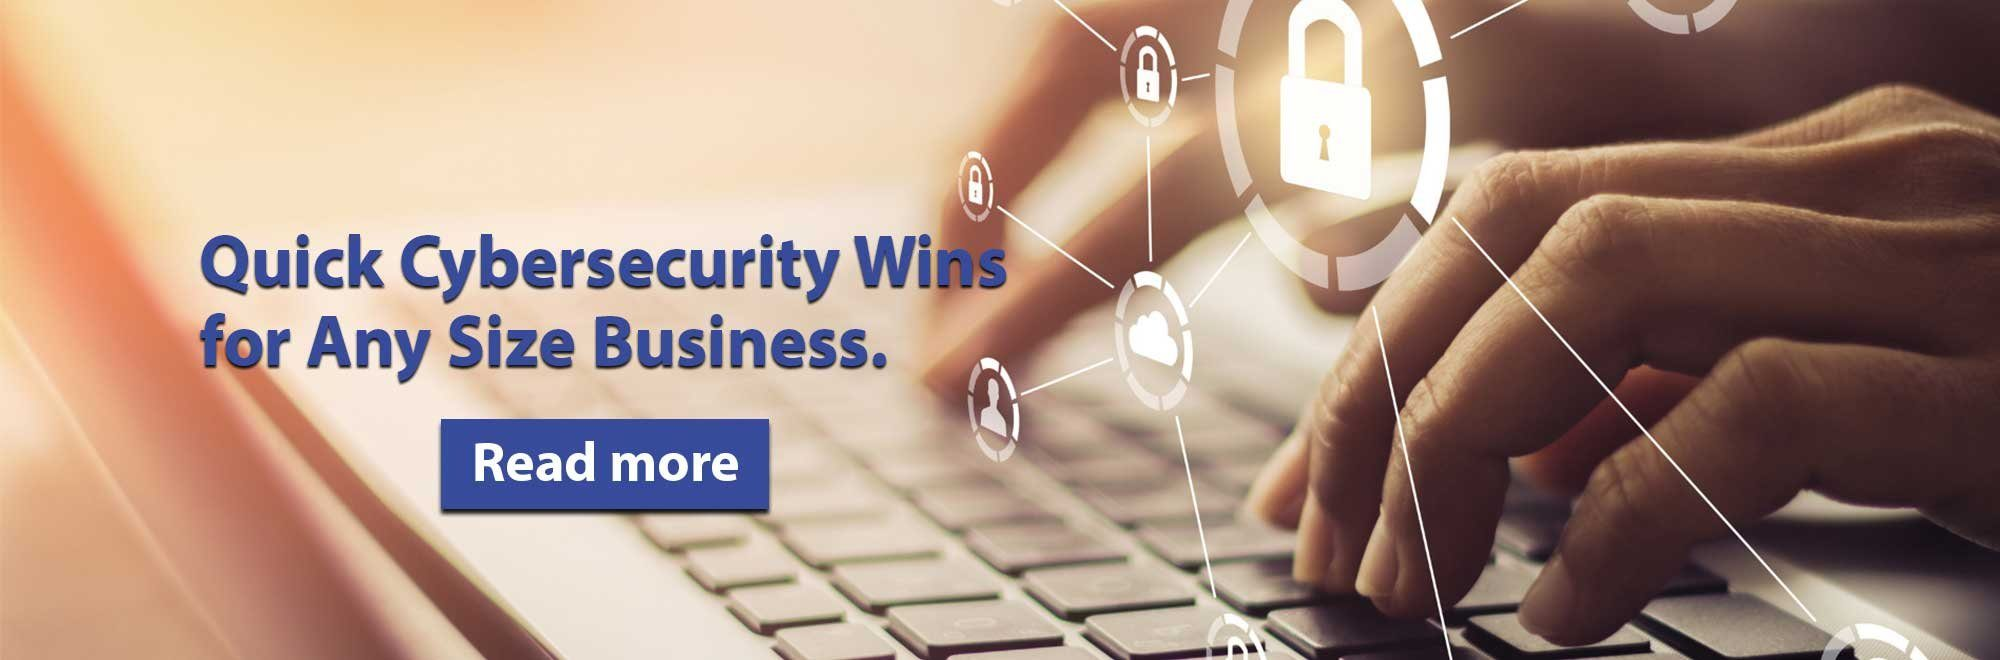 Quick Cybersecurity Wins for Any Size business. Read more.